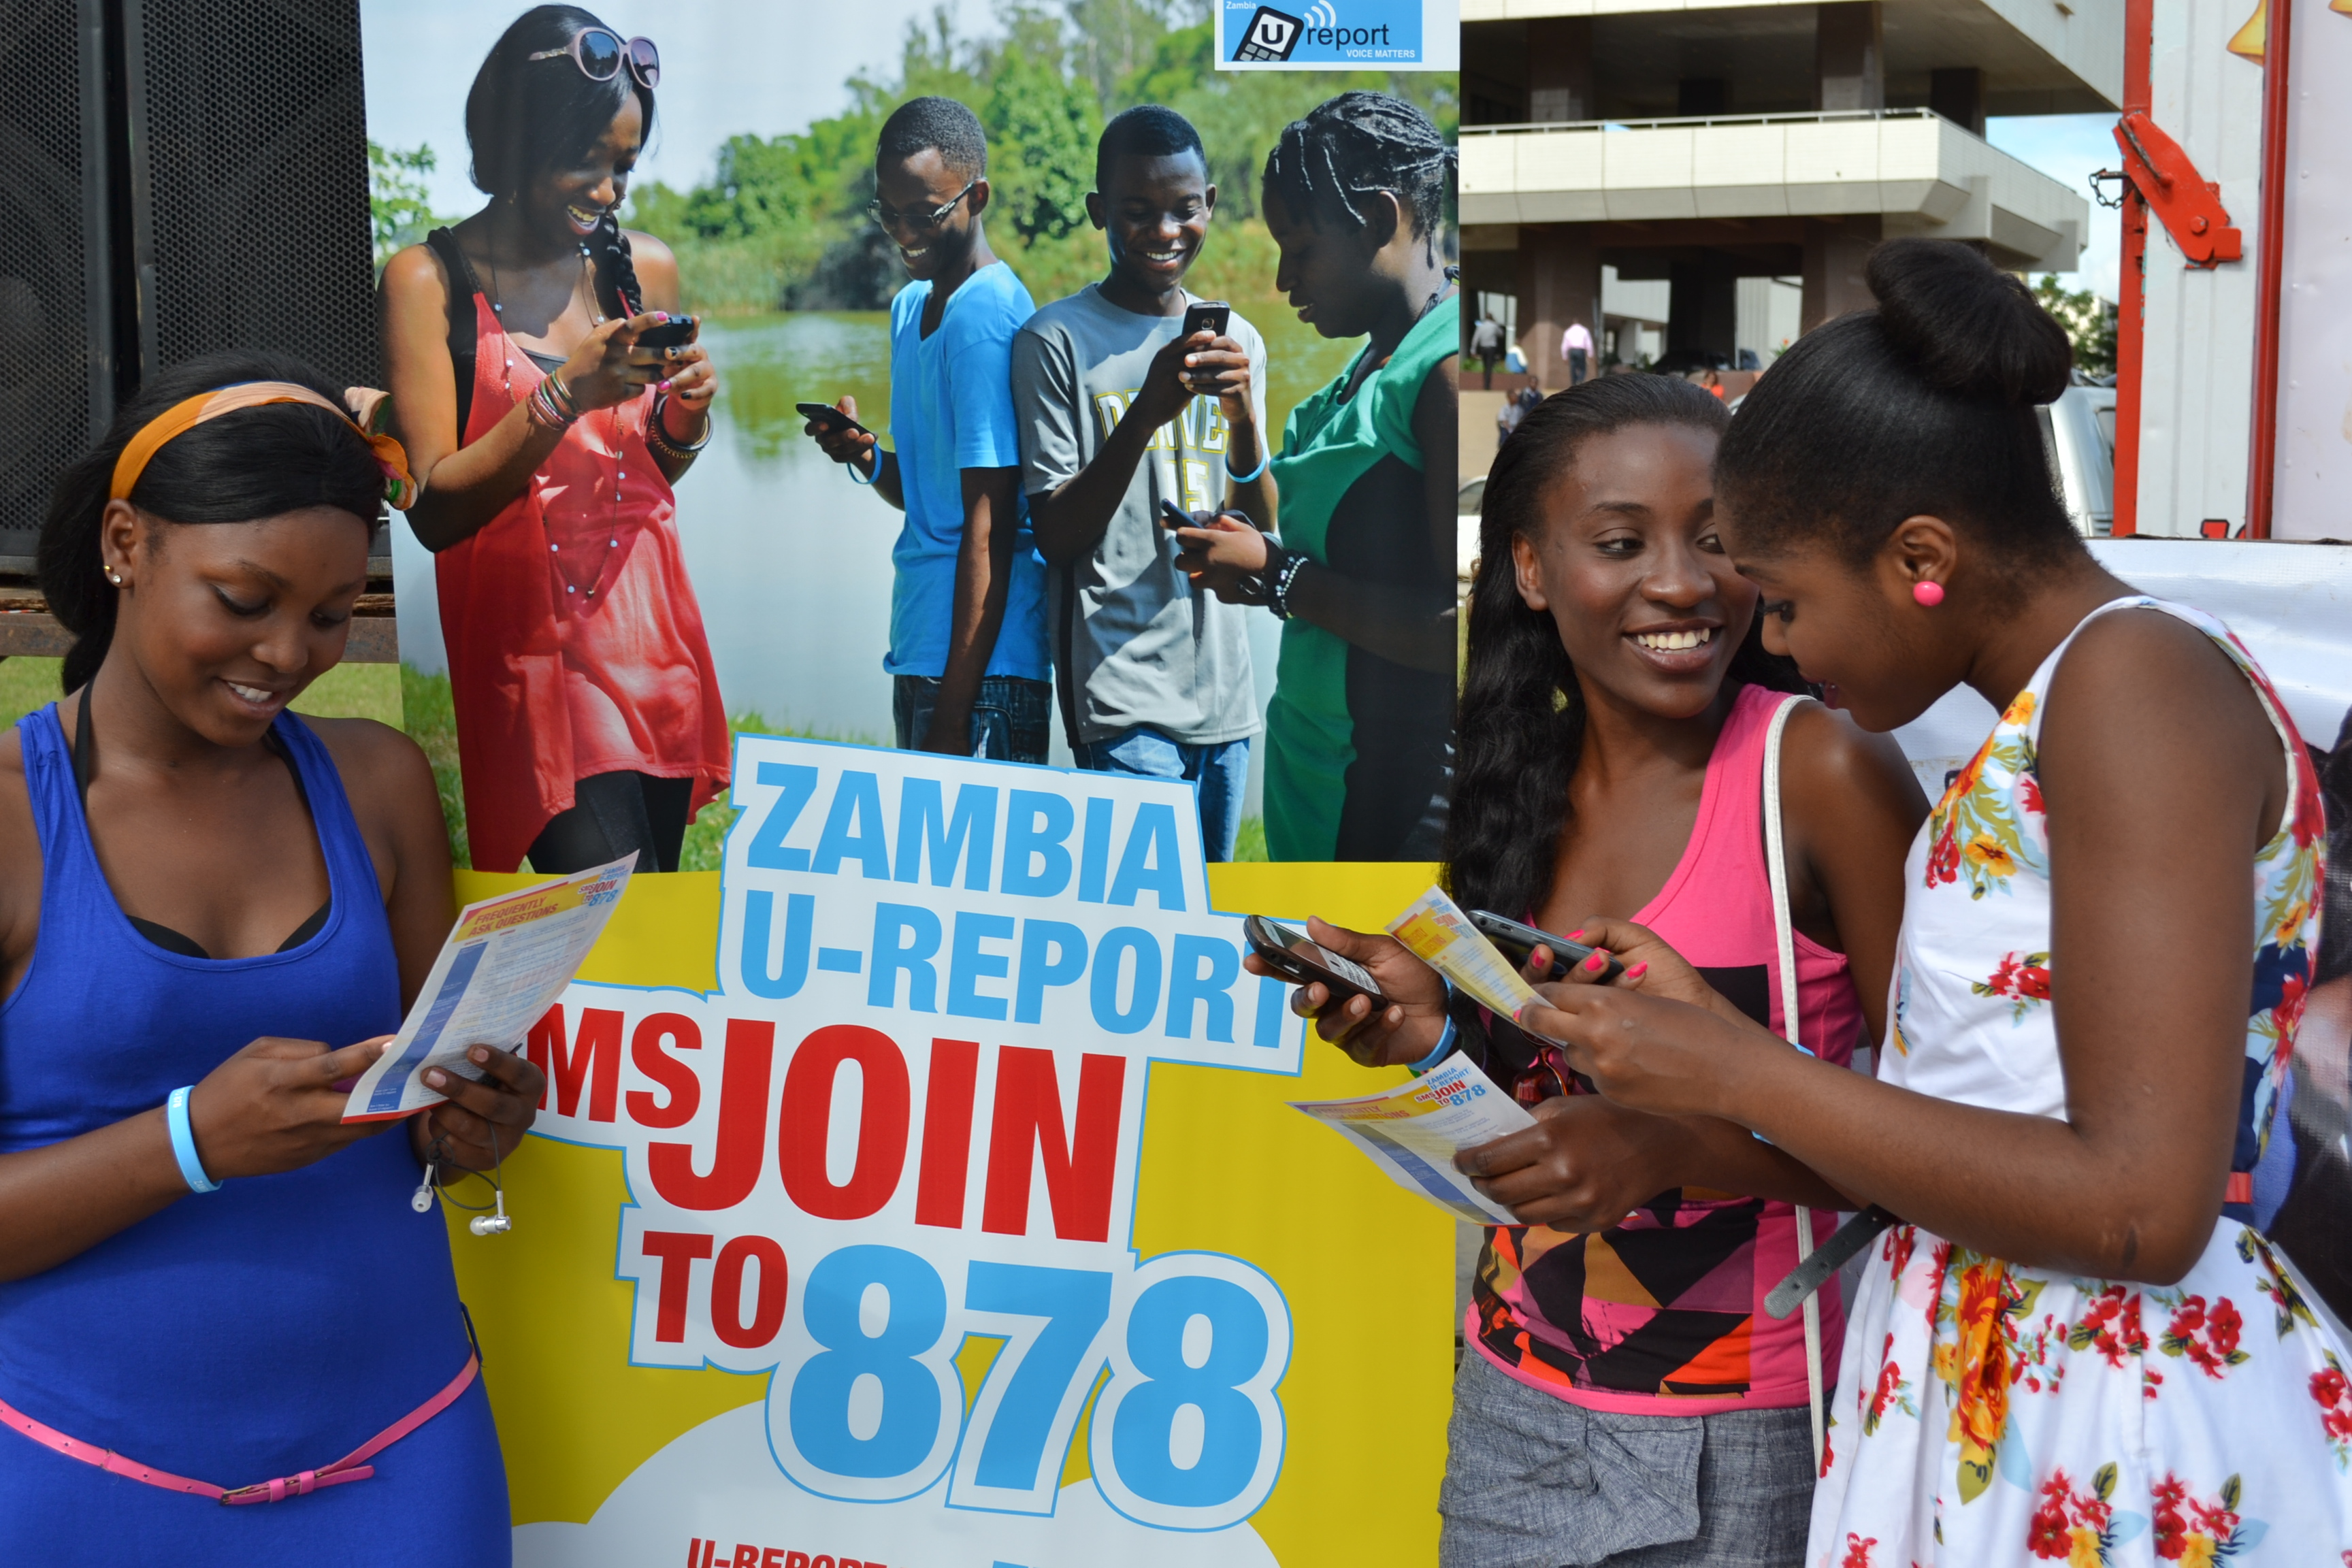 Three teenage Zambian girls next to U-Report pop-up